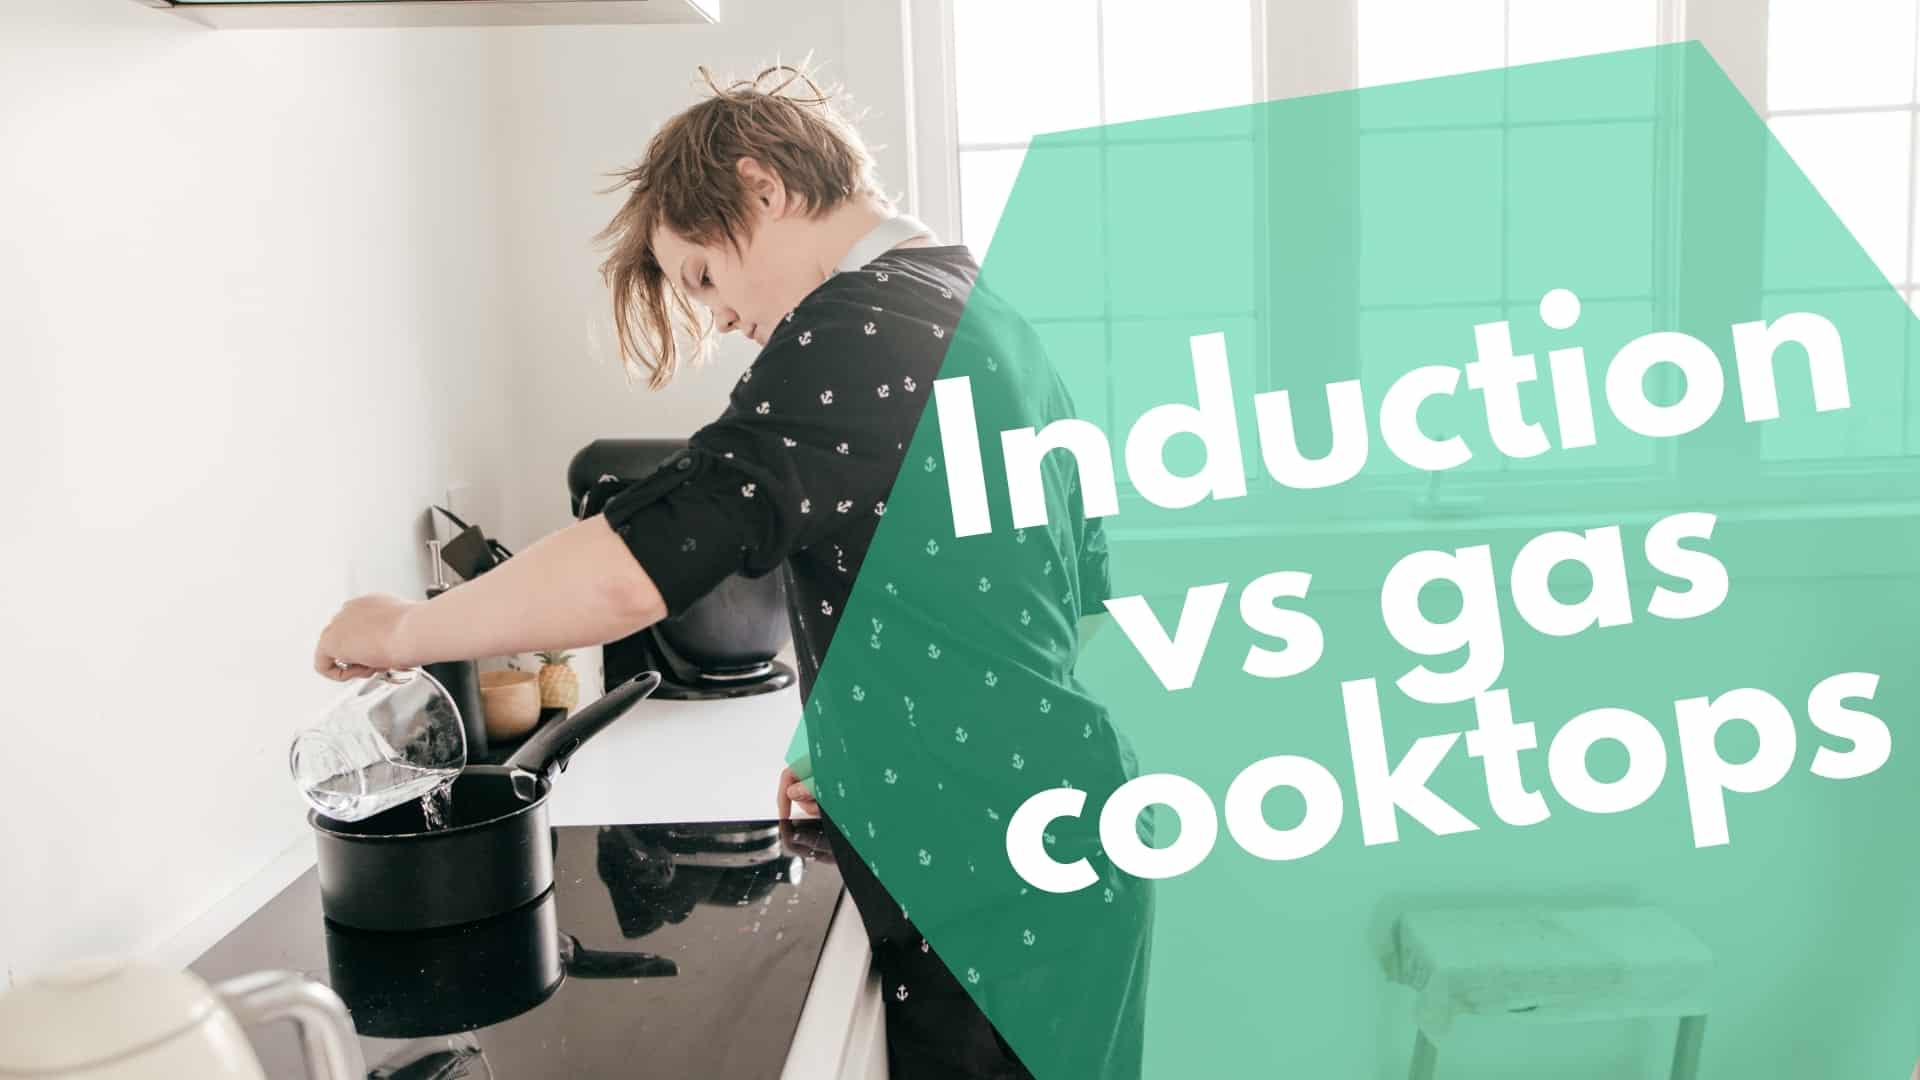 Induction vs gas cooktops